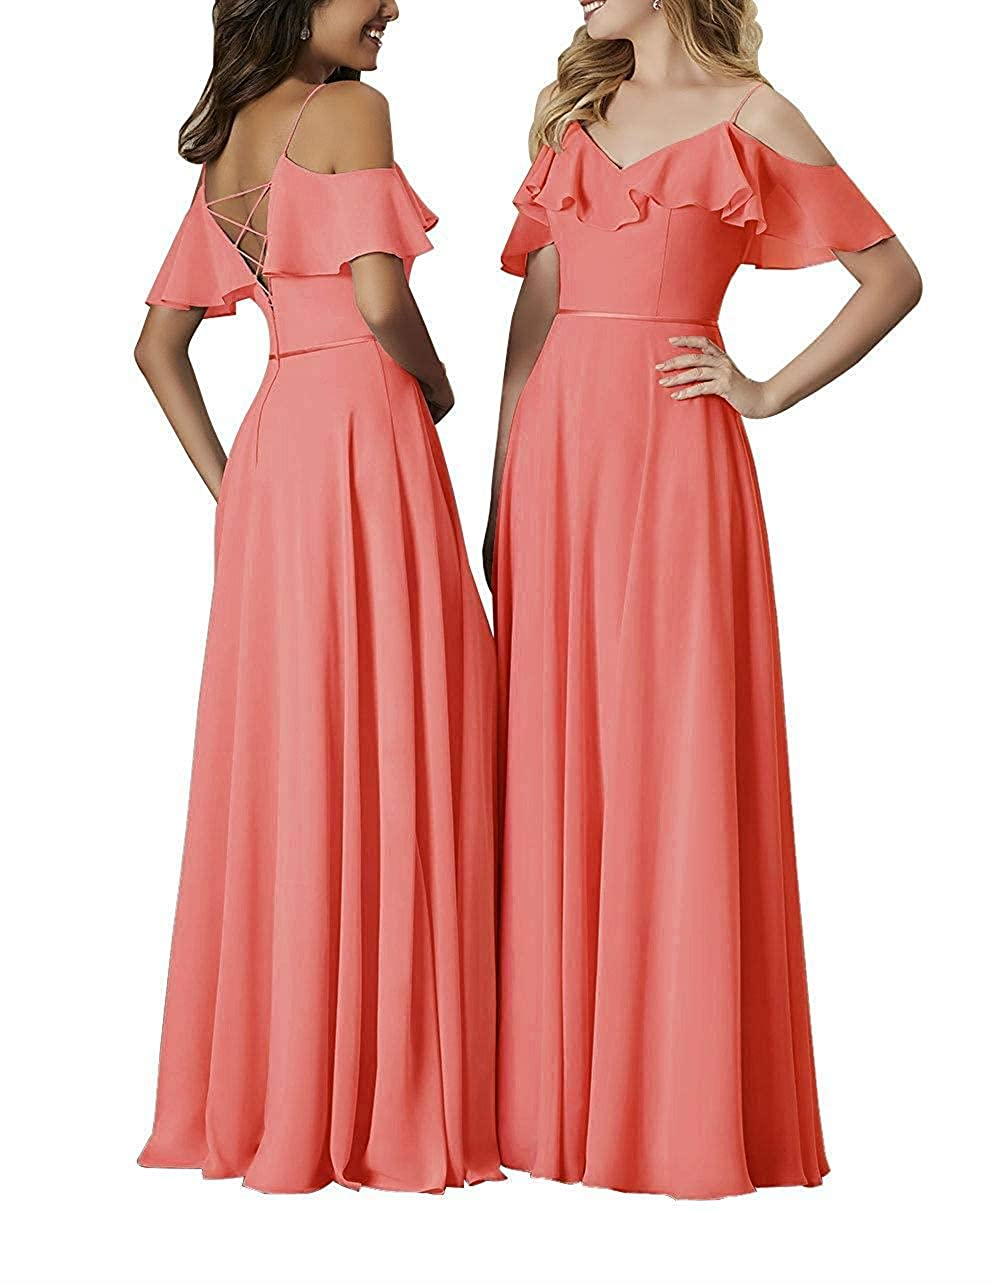 Coral Staypretty Bridesmaid Dresses Long Off The Shoulder Simple Formal Gowns for Women